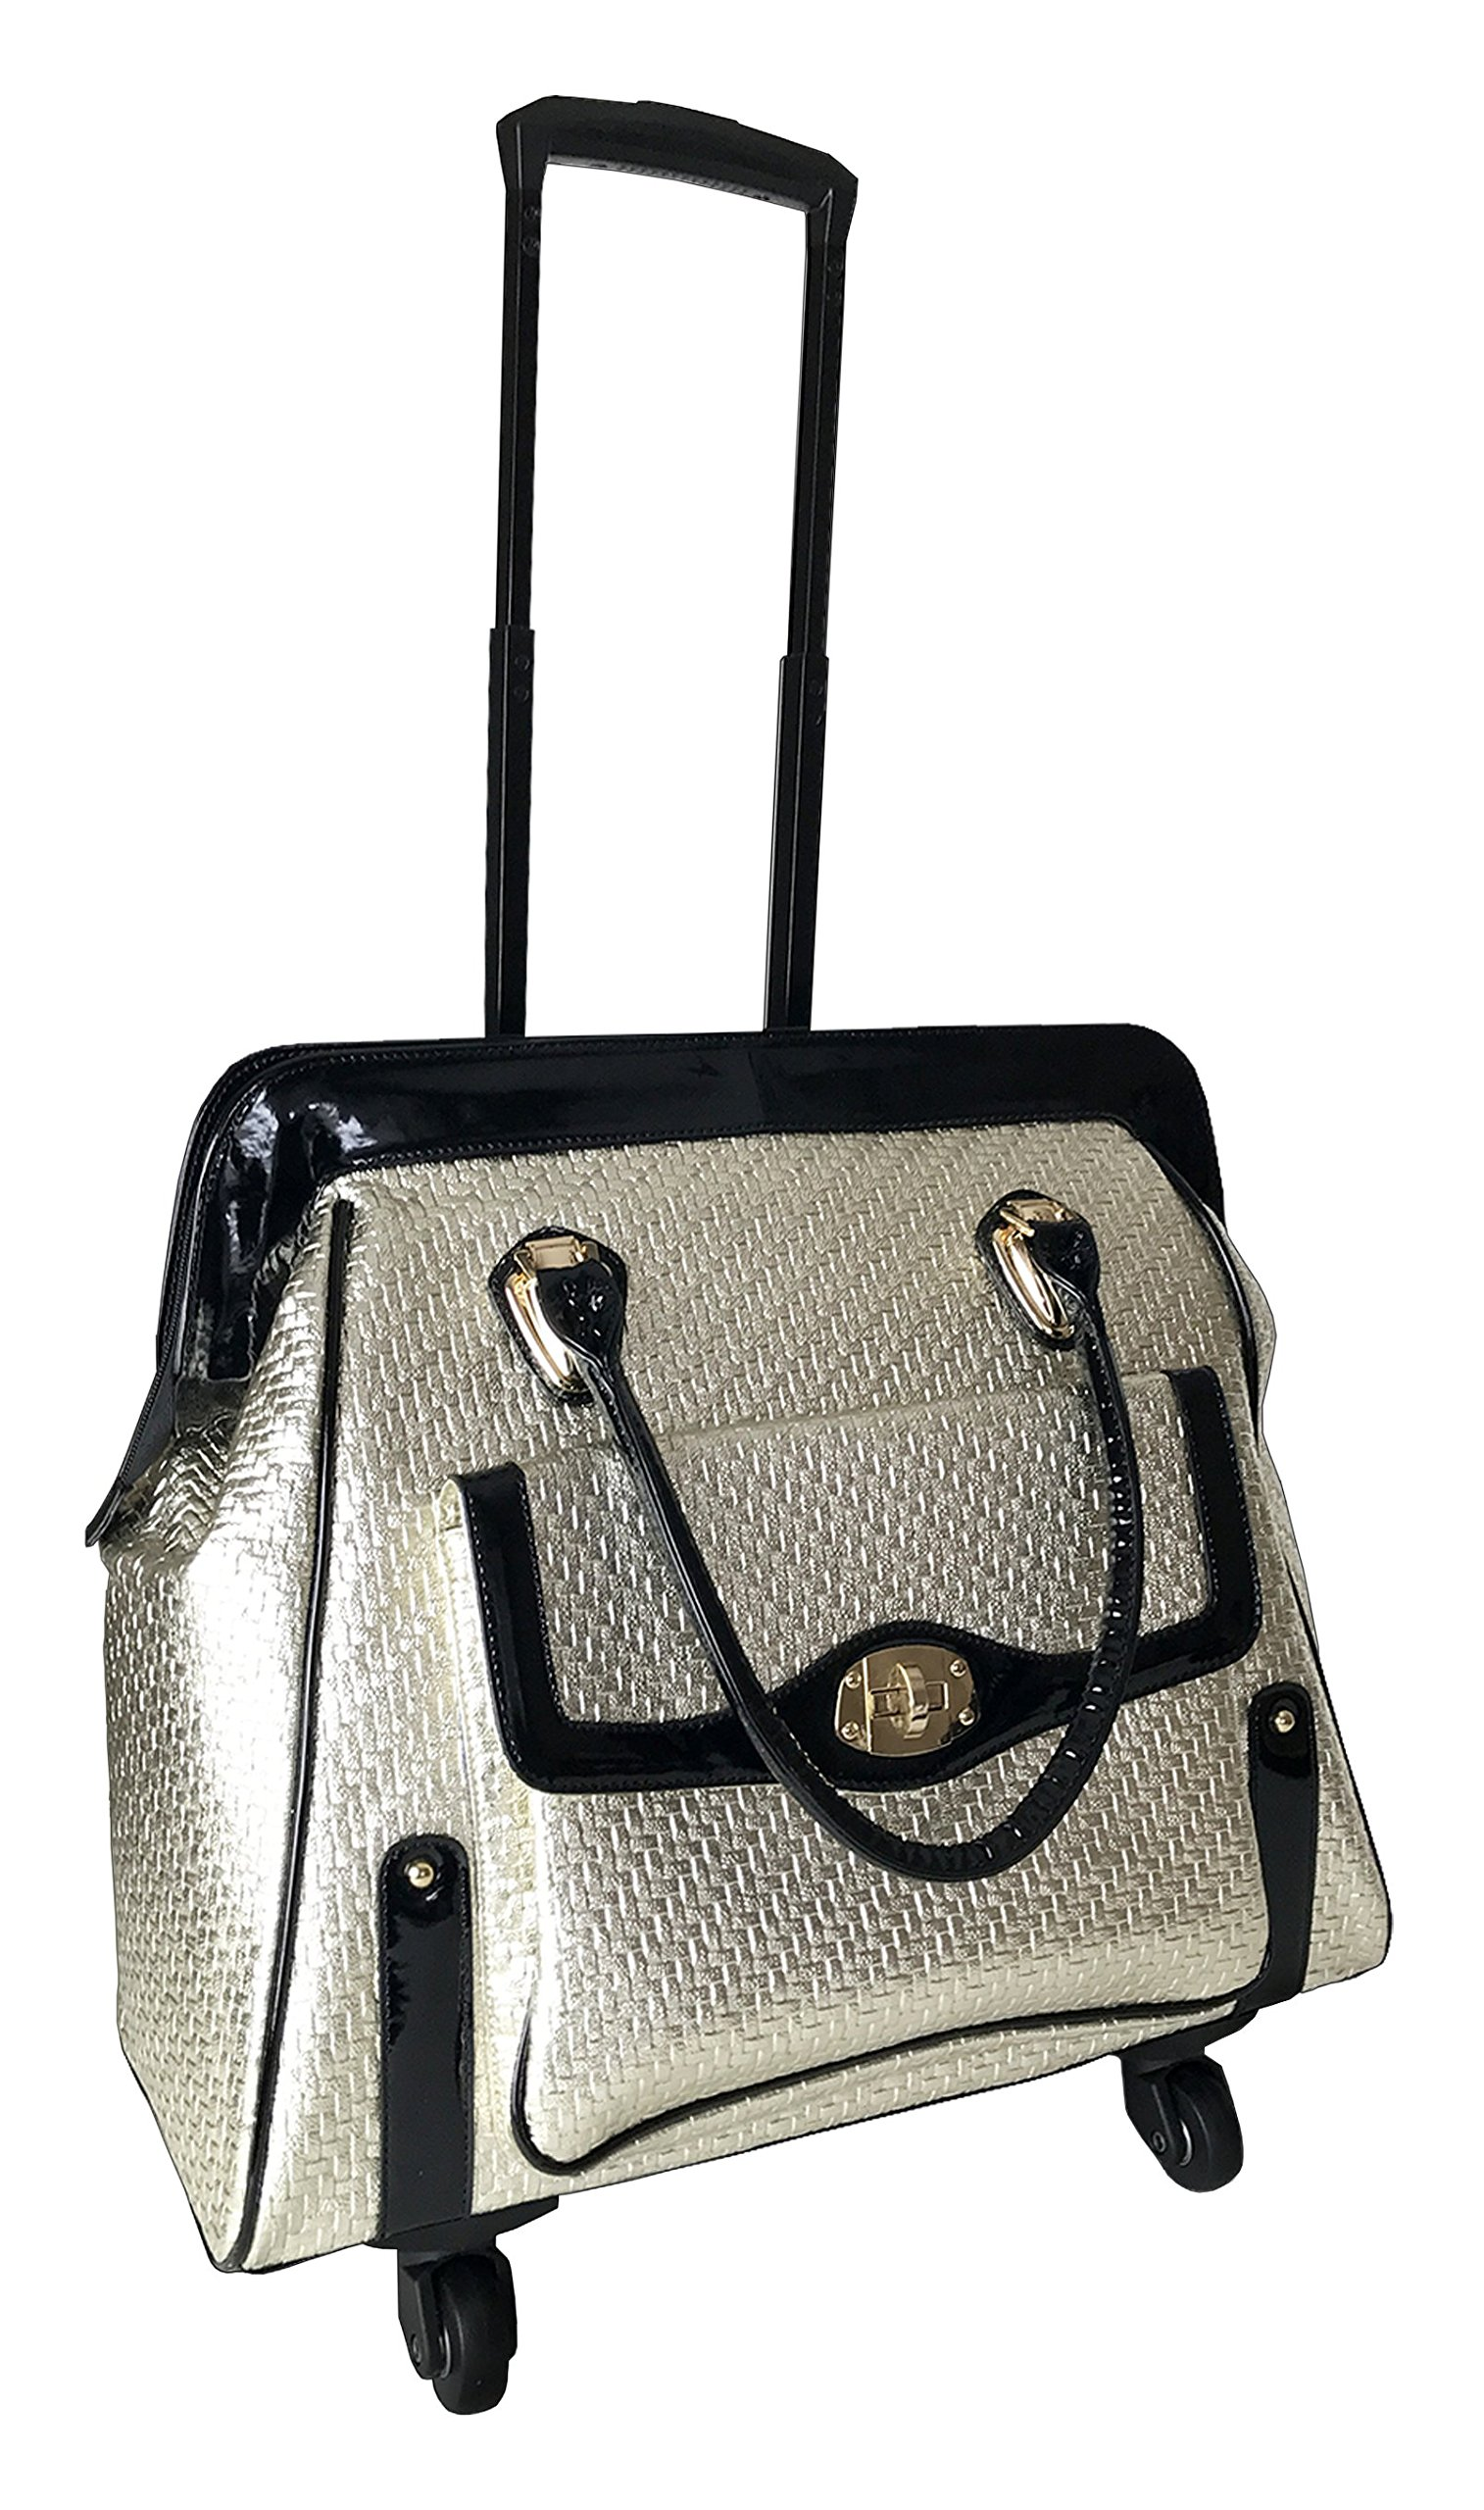 Trendy Flyer 20''Computer/Laptop Rolling Bag 4 Wheel Case Tote Gold by Trendyflyer Collection